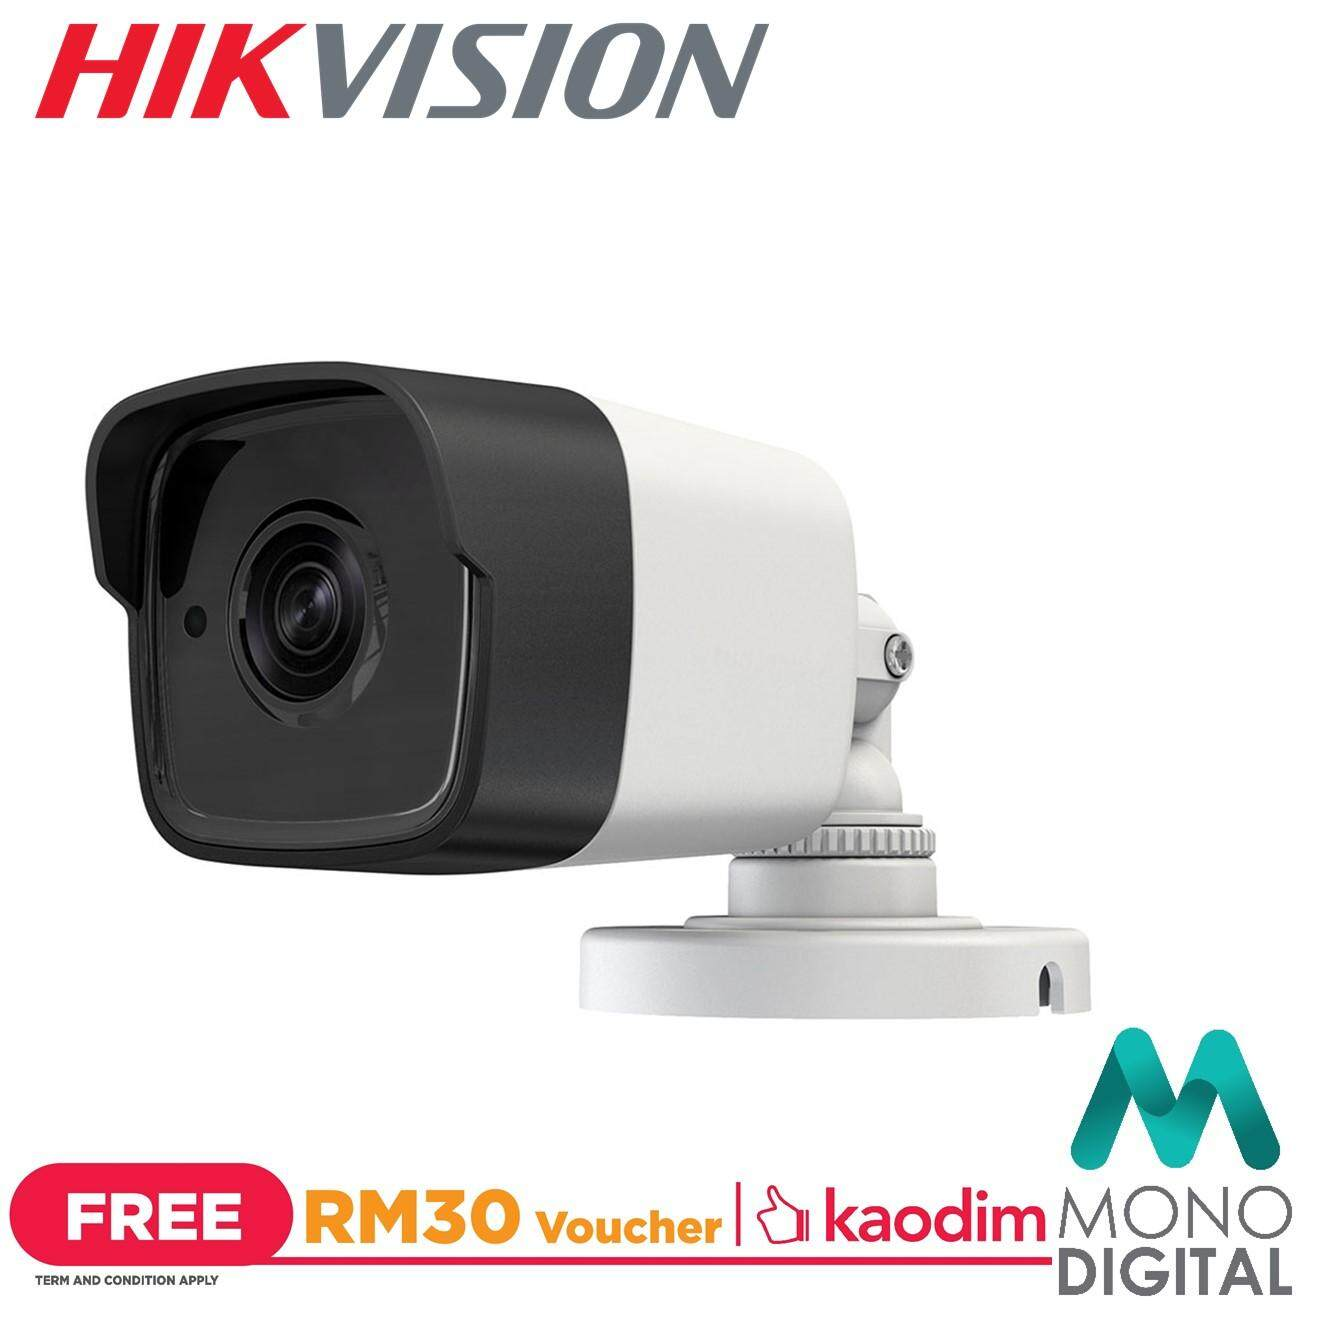 Hikvision DS-2CE16H0T-ITF 5 MP Bullet Camera CCTV (Free Kaodim Voucher  RM30) (Hikvision Malaysia) Promo